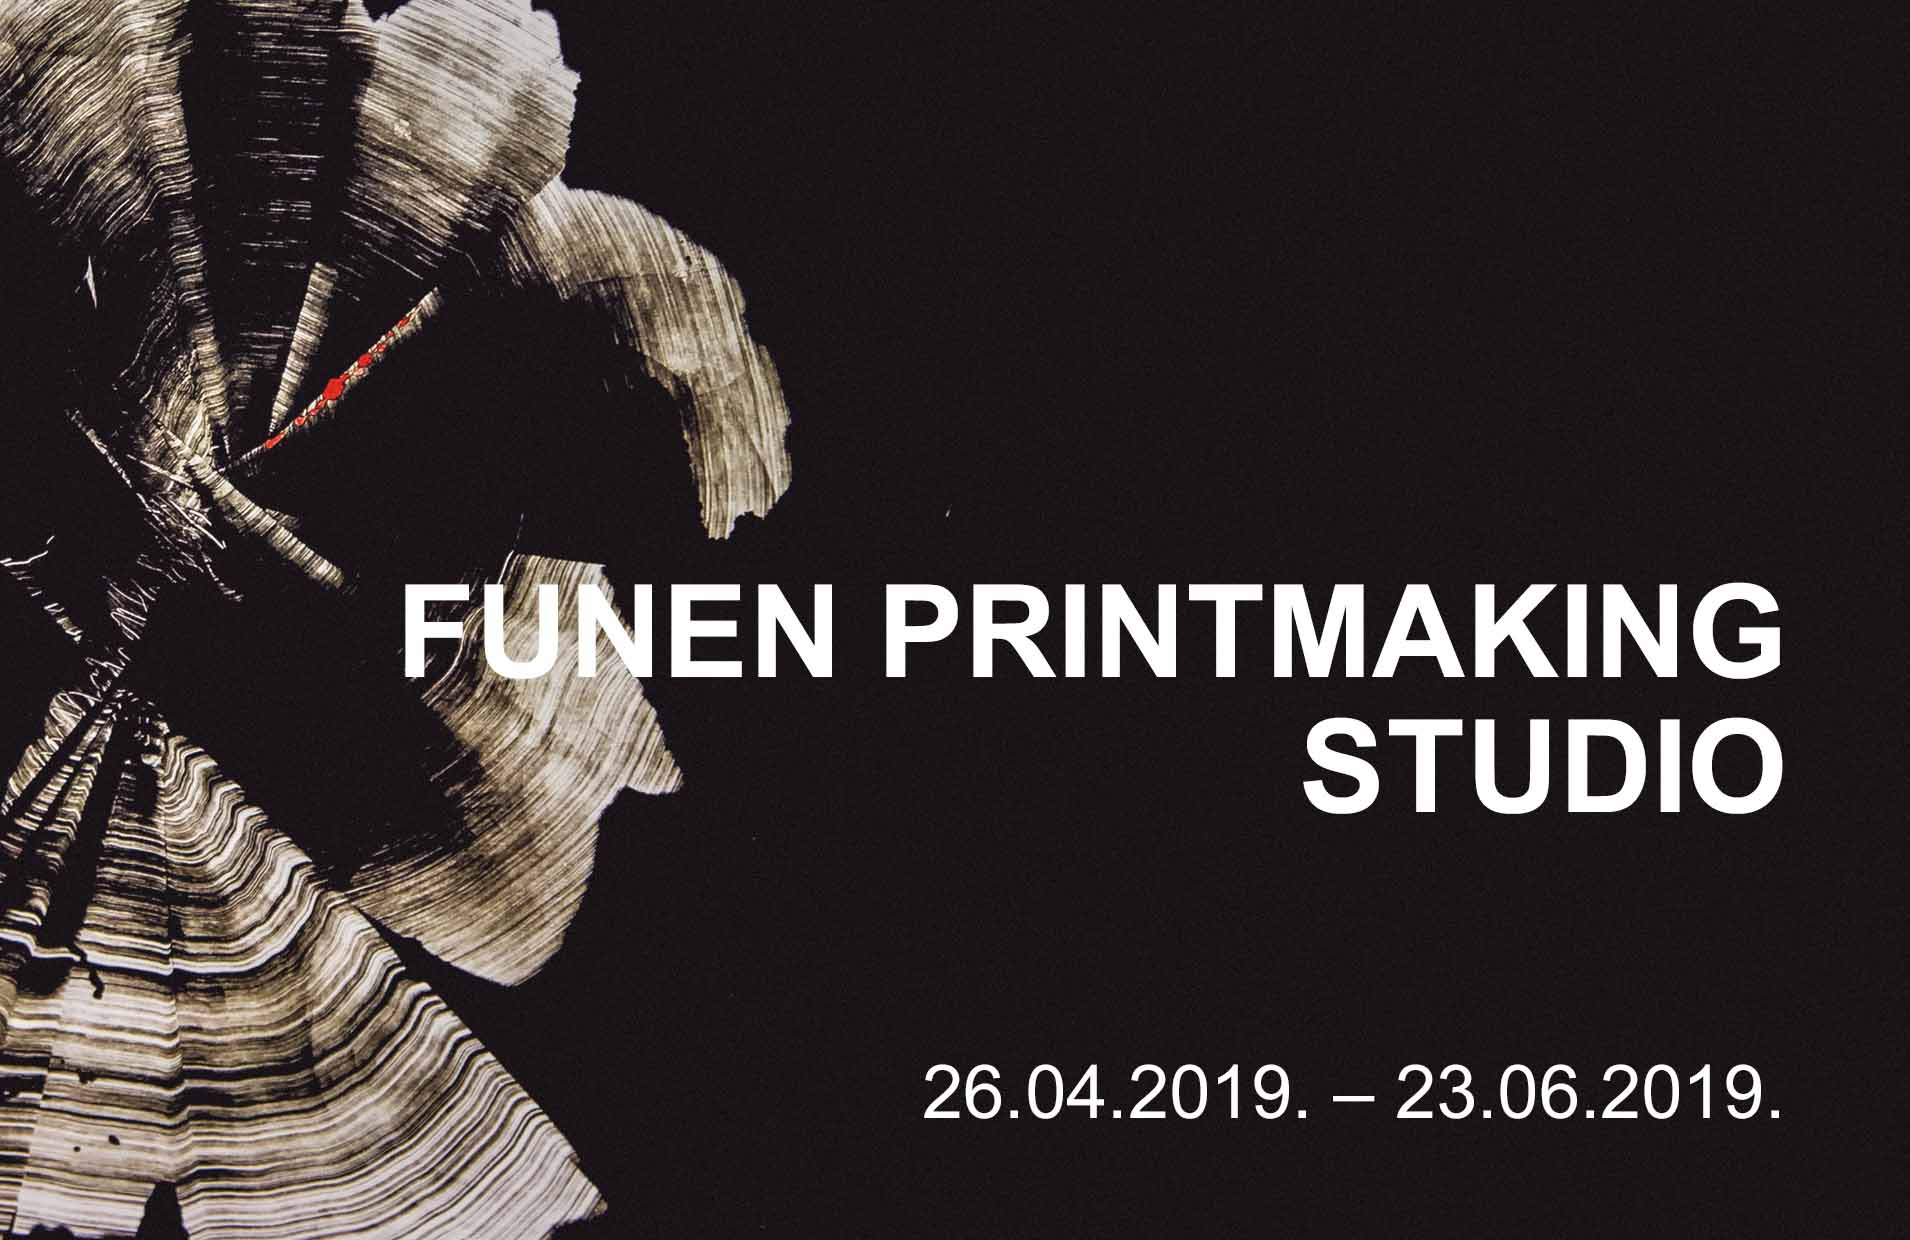 The Funen Printmaking Workshop – artist studio in Denmark